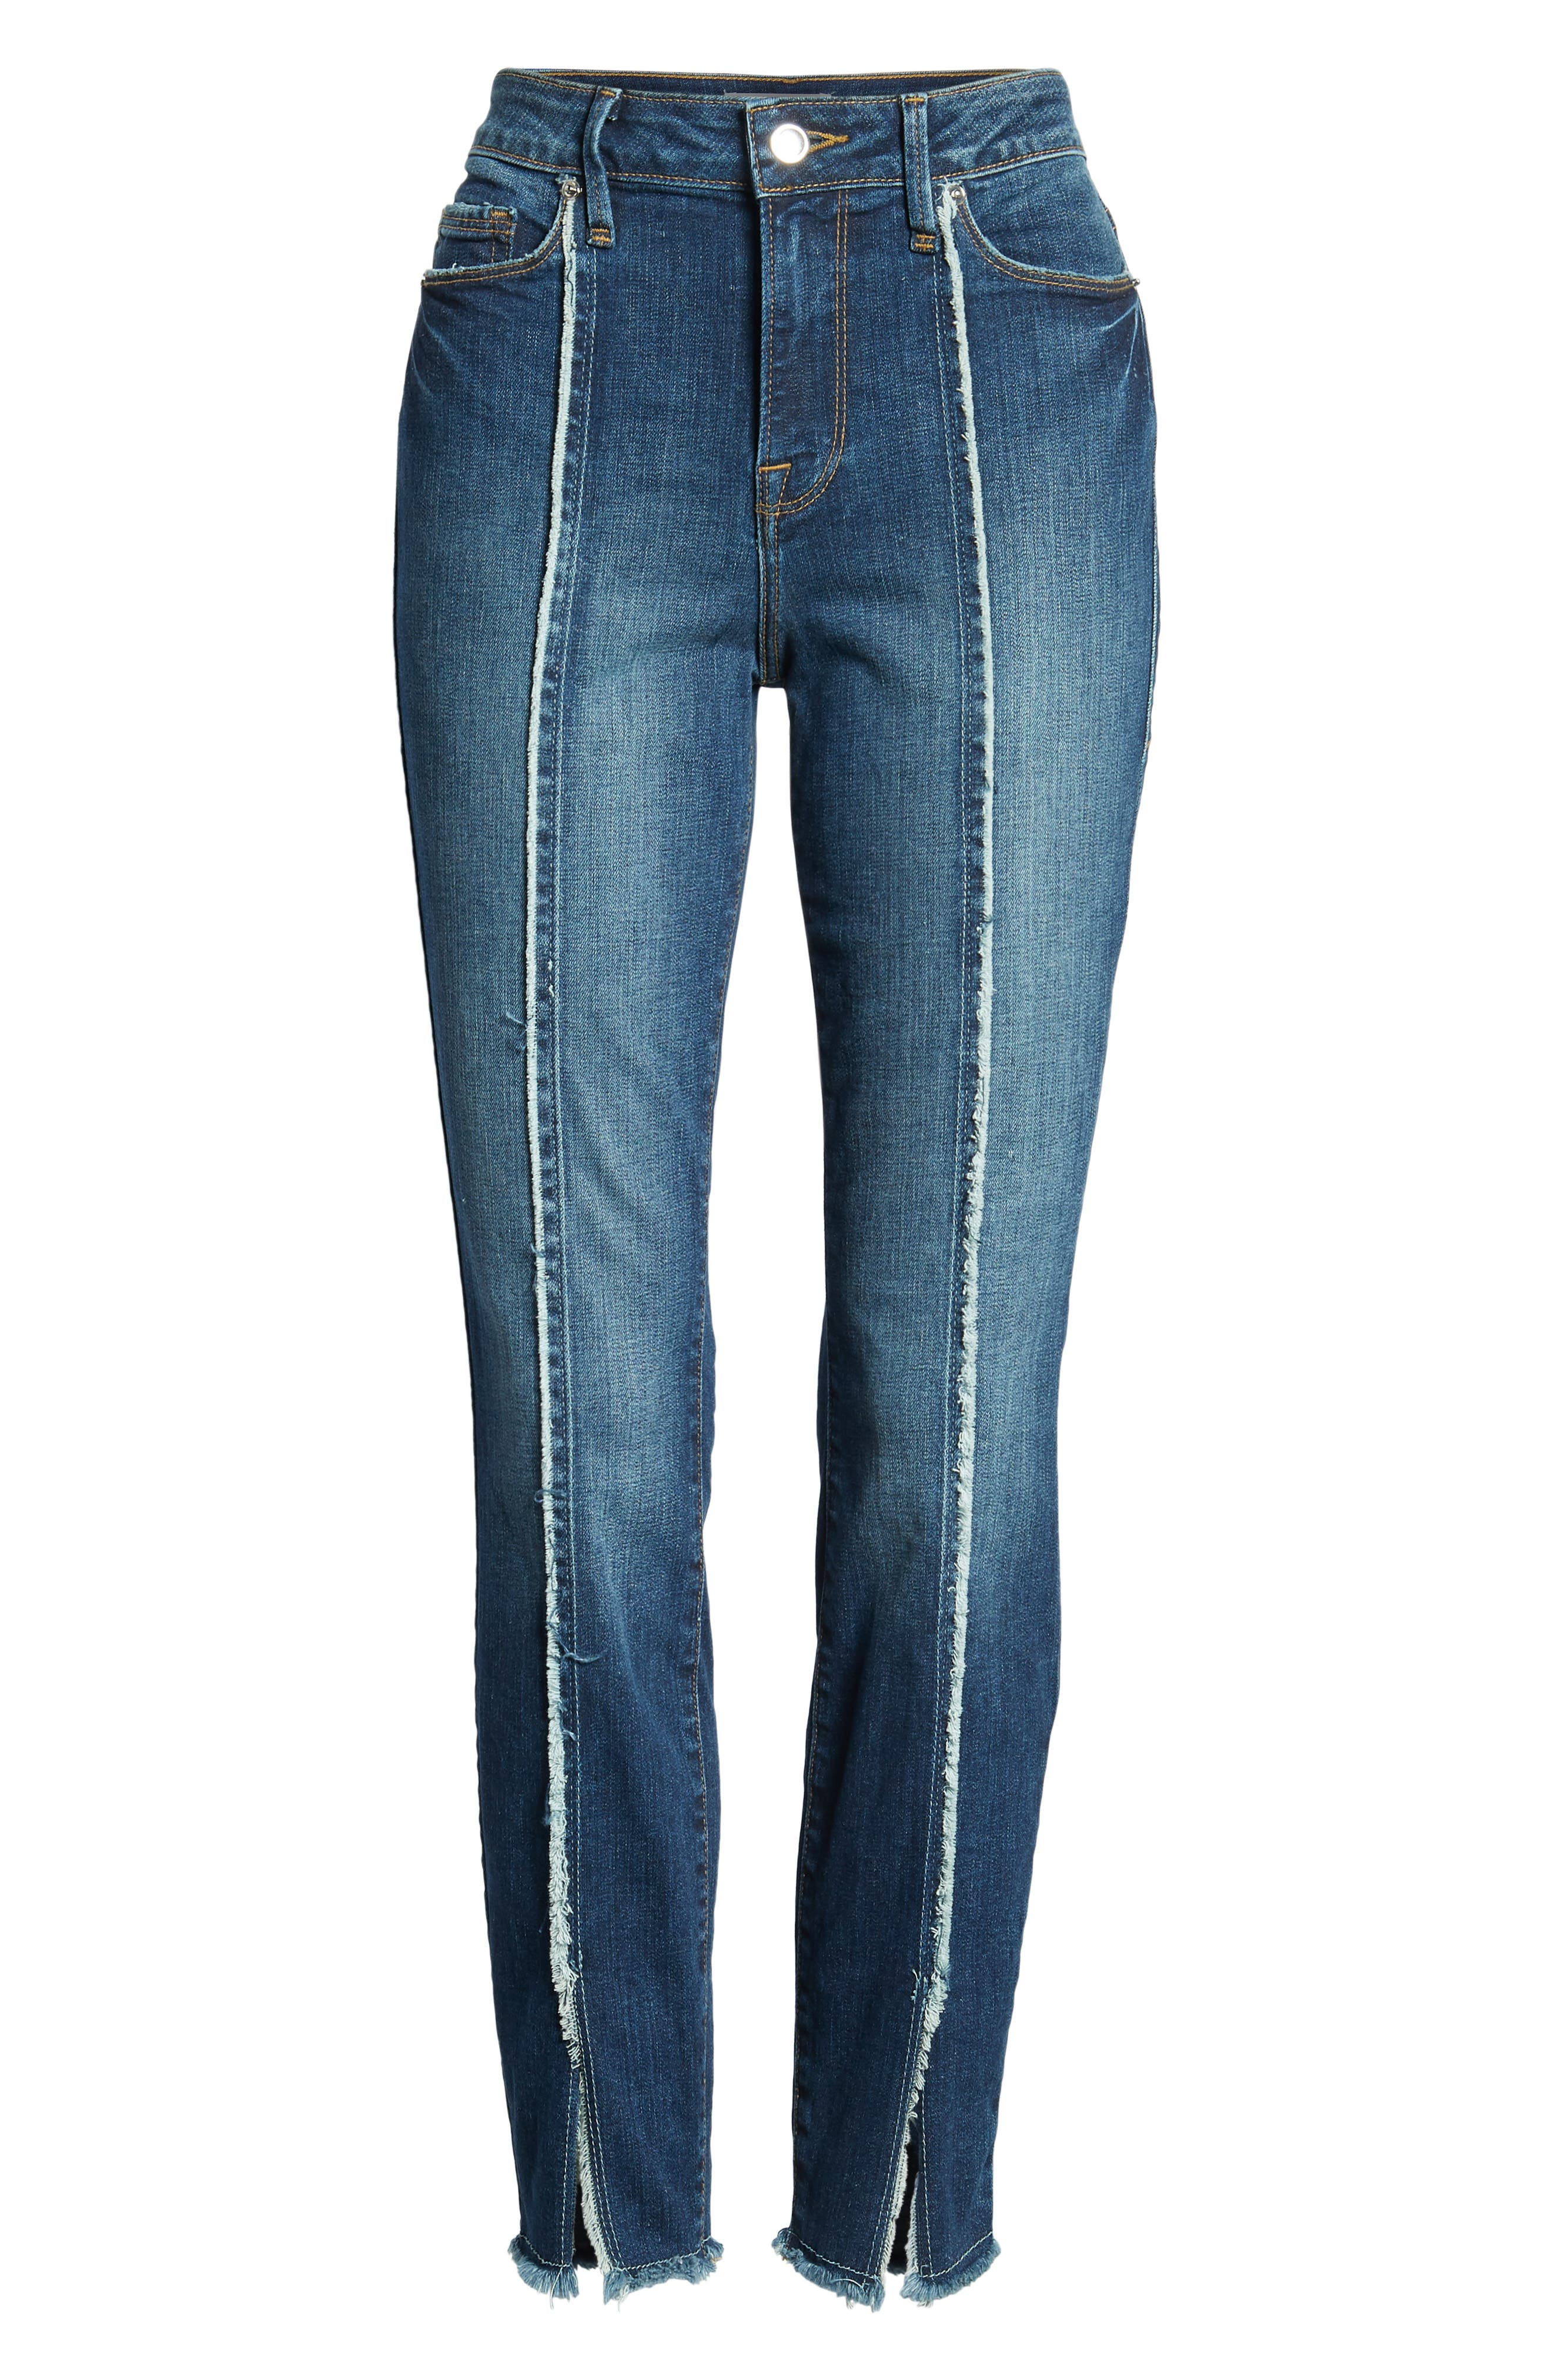 Good Jeans Raw Seam Crop Skinny Jeans,                             Alternate thumbnail 7, color,                             401